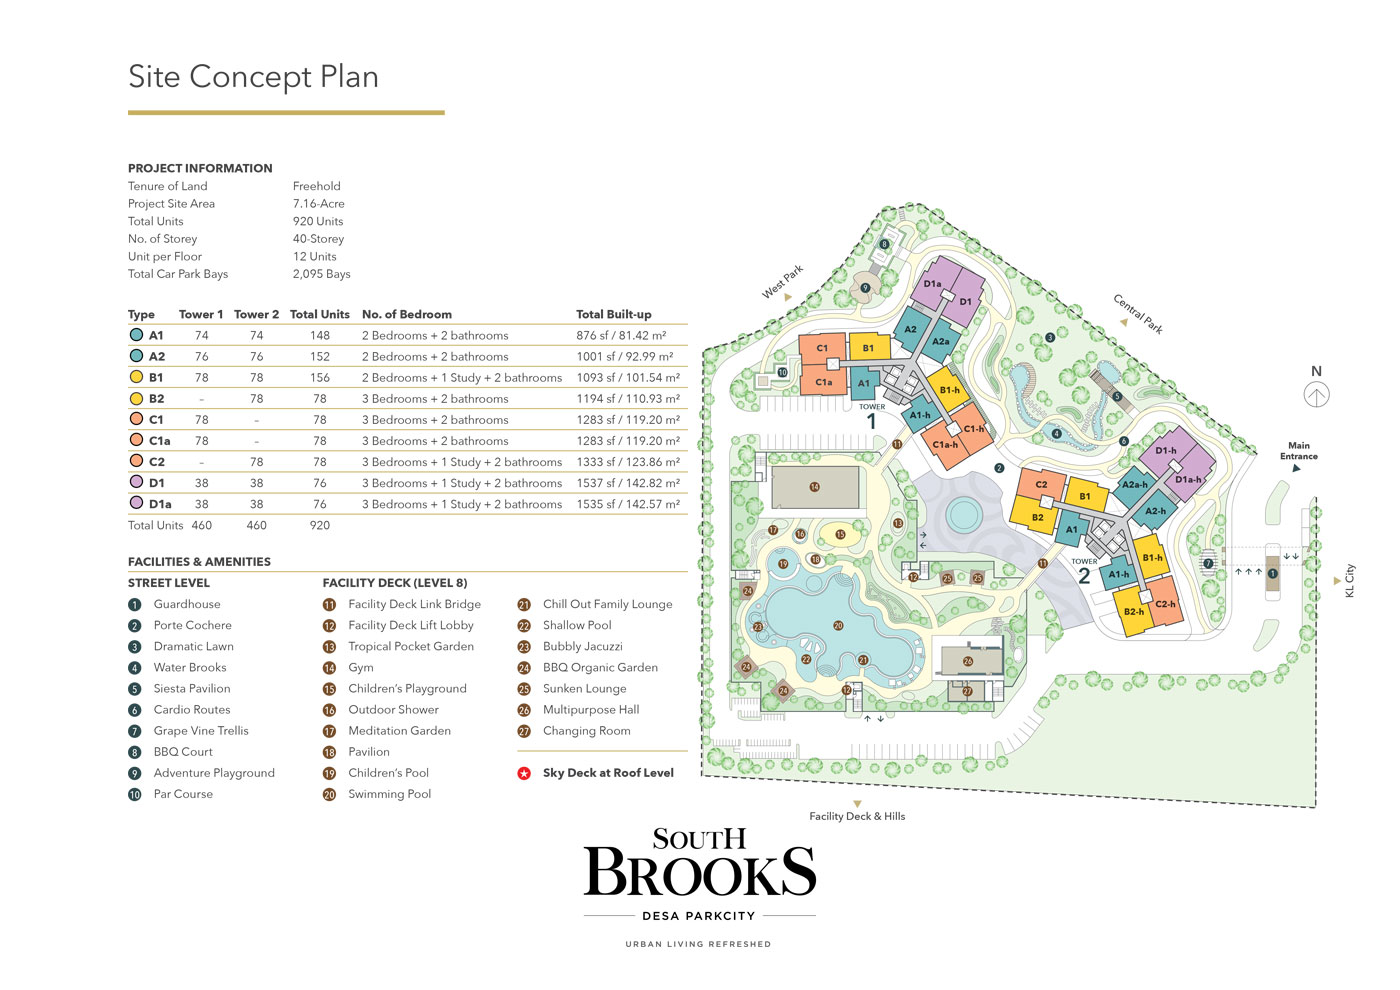 Site Plan of South Brooks